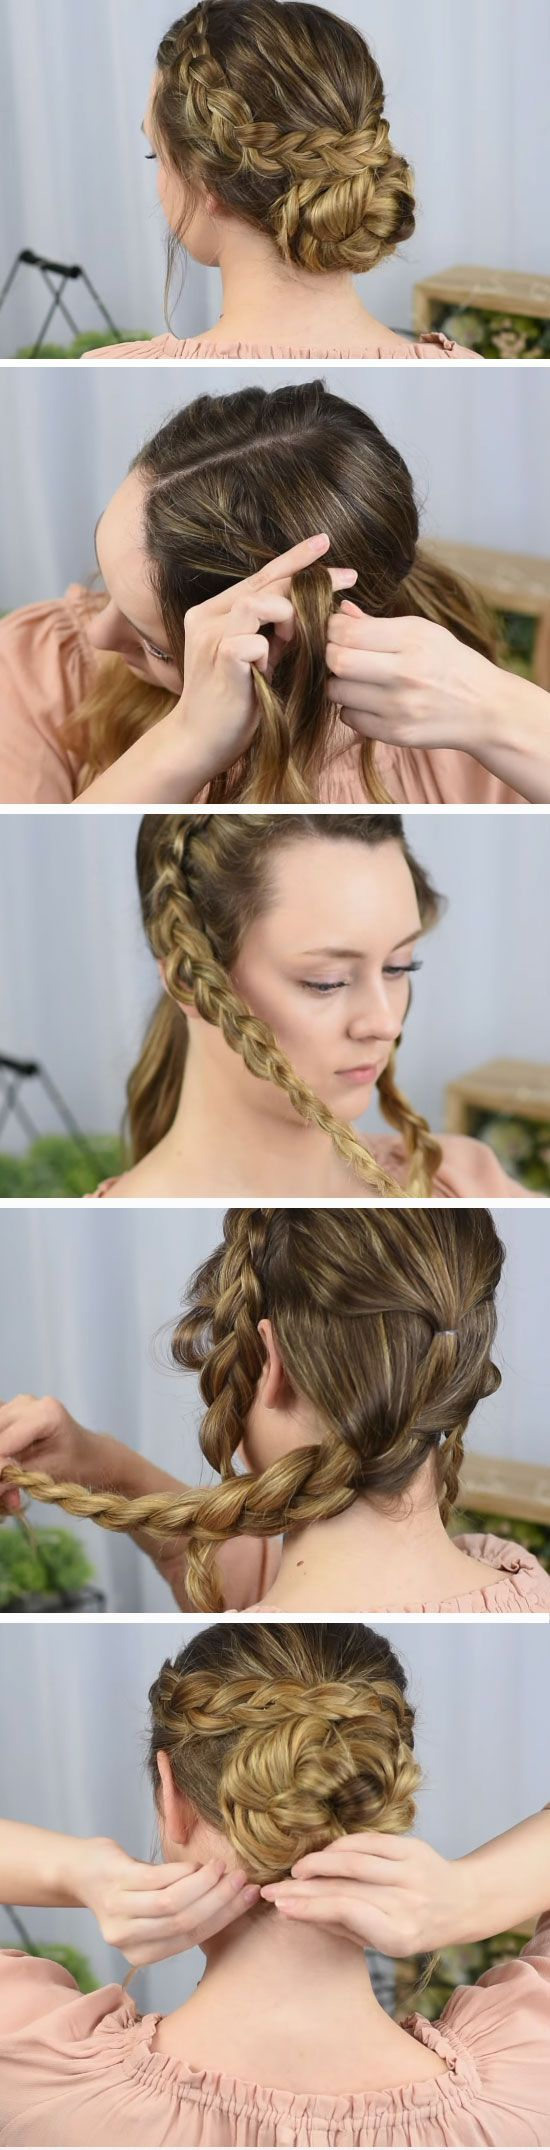 best 25+ homecoming hairstyles ideas on pinterest | prom